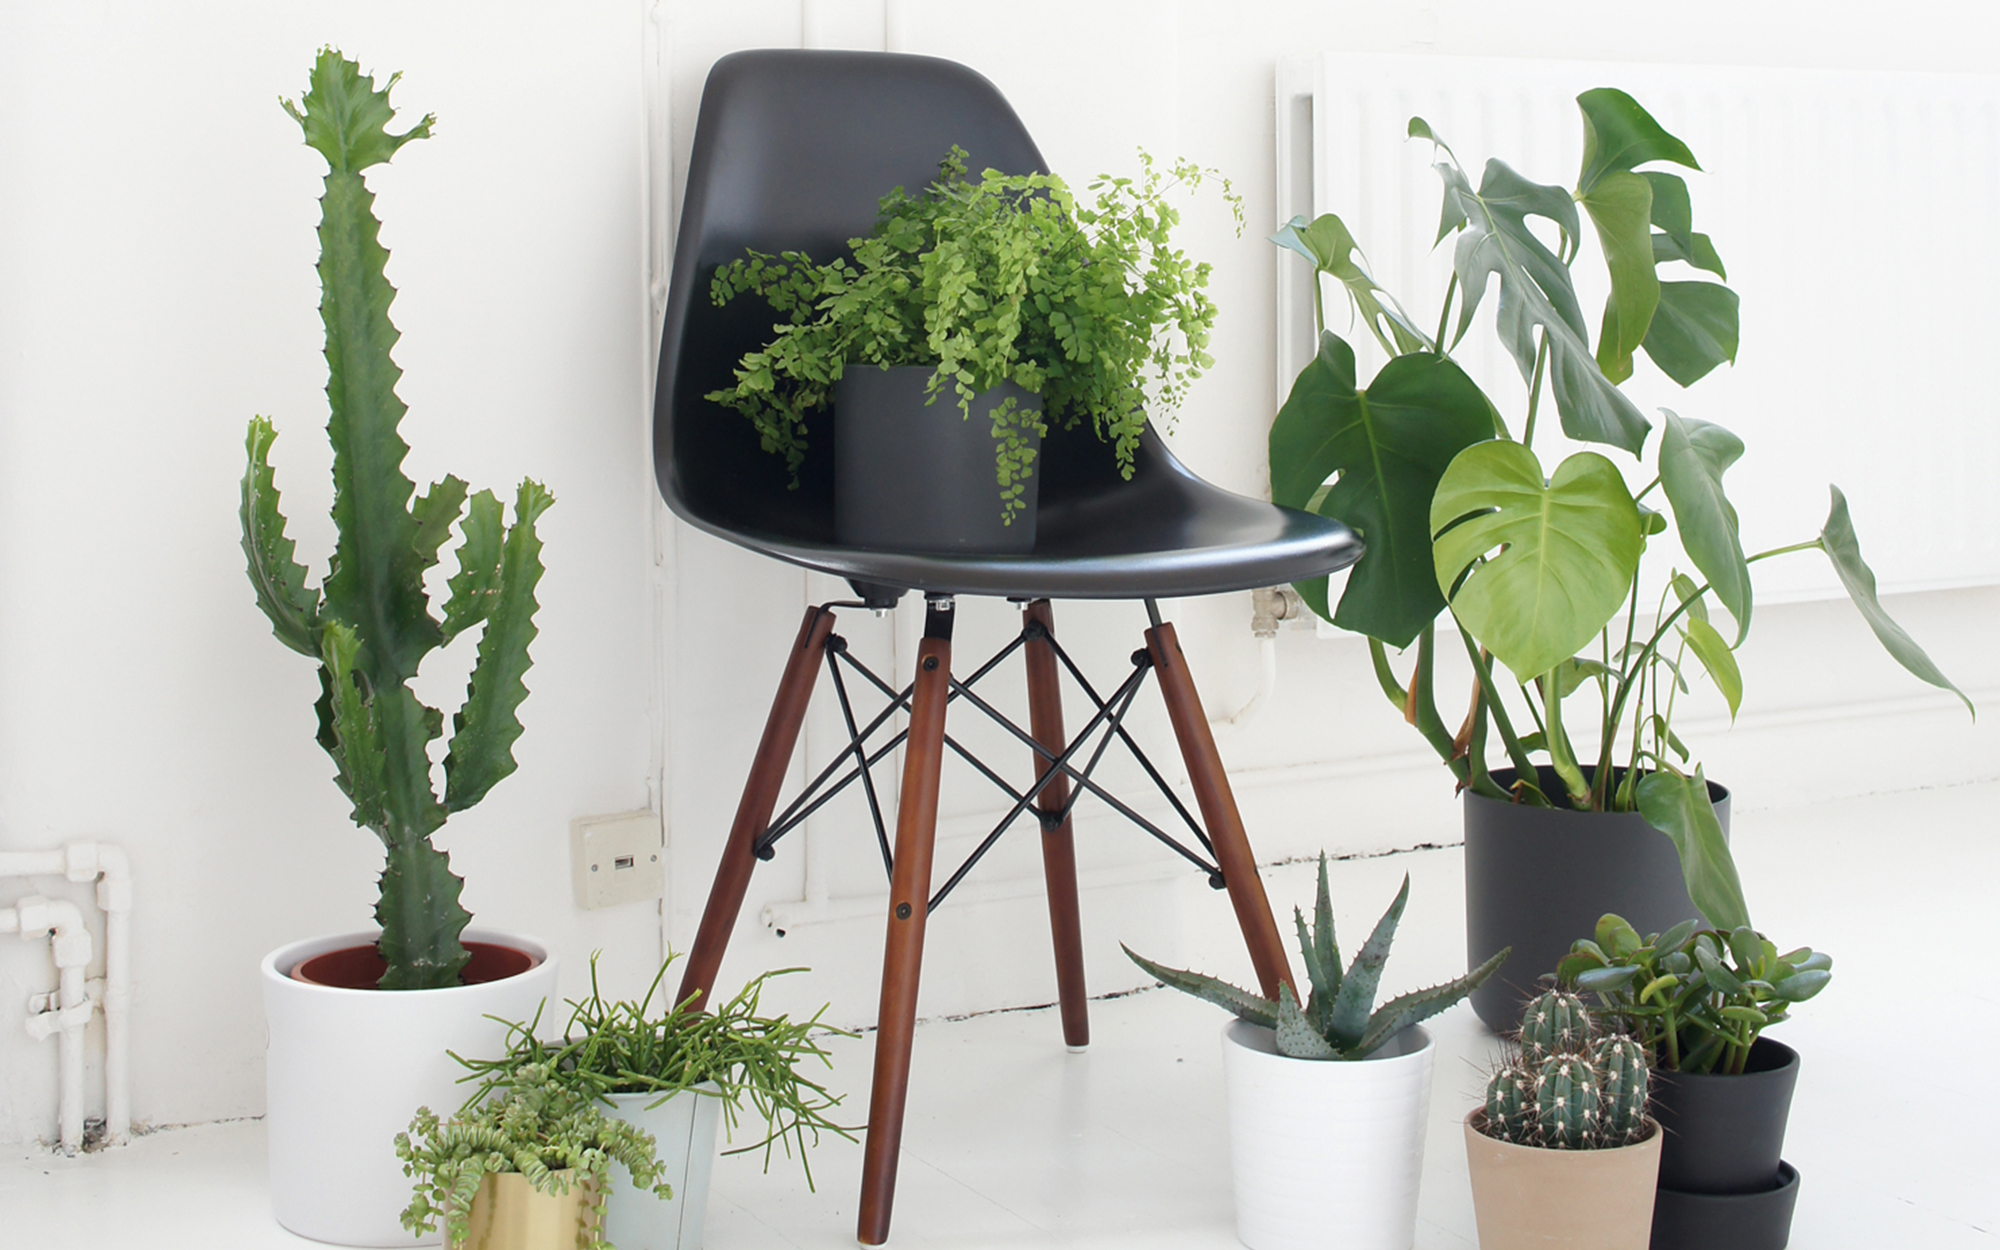 Eames DSW Chair Used To Display Plants